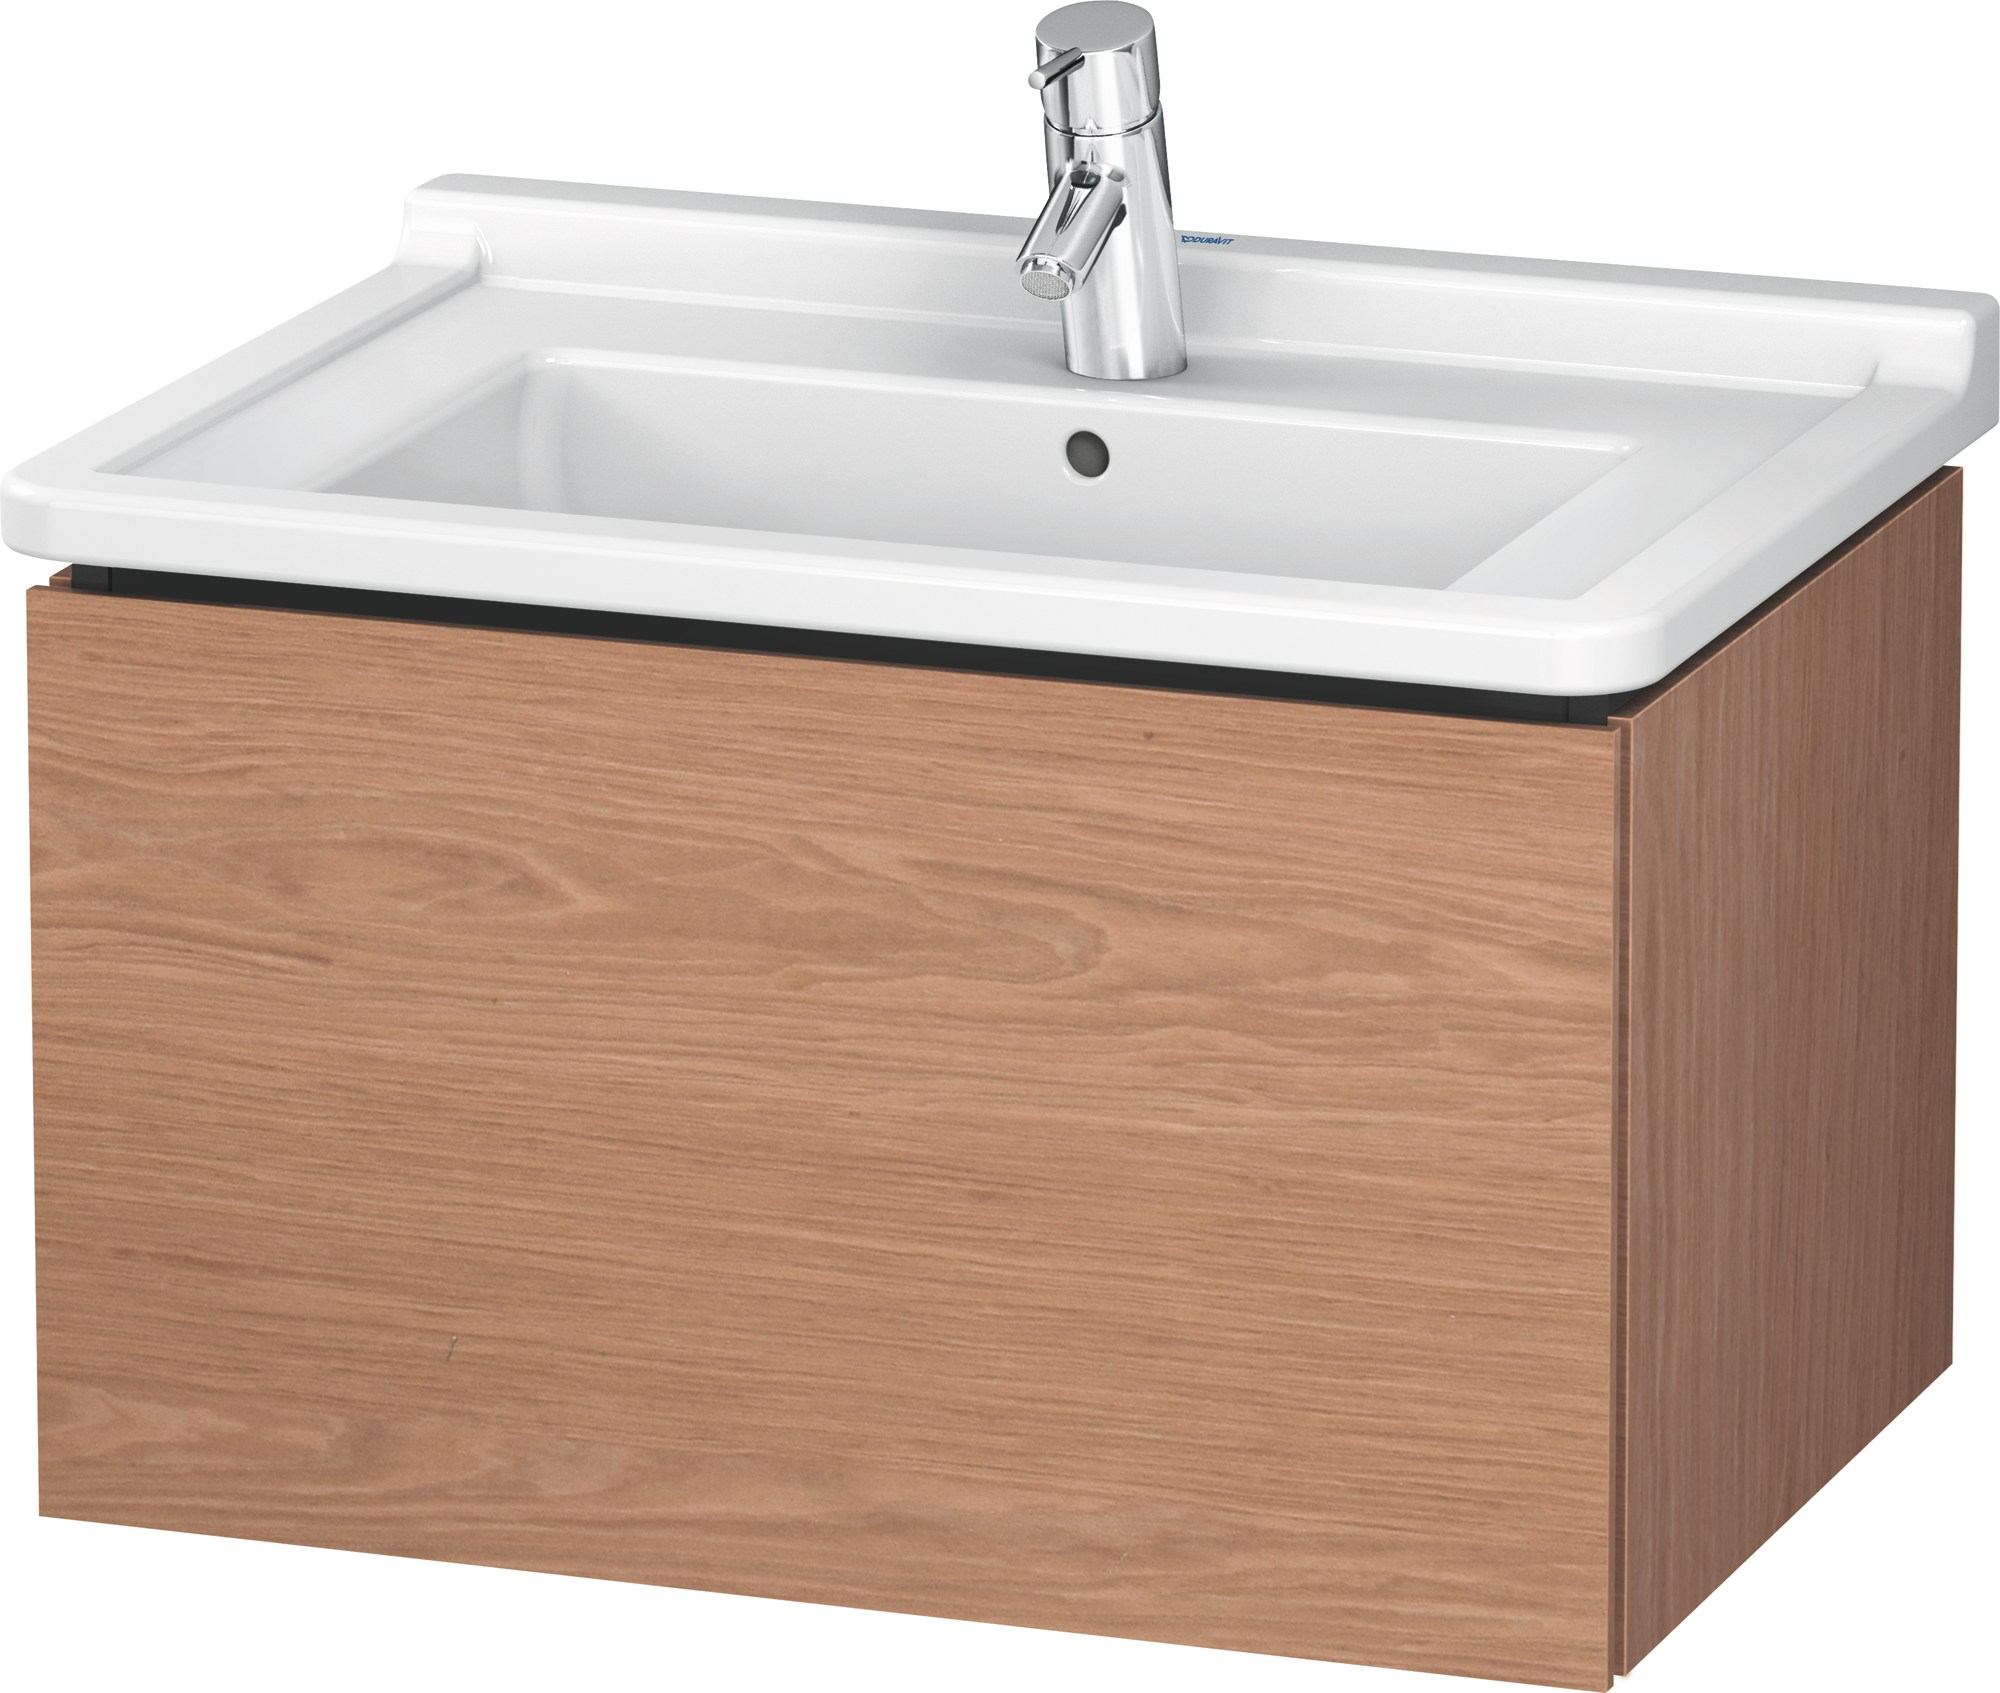 Lc 6164 meuble sous vasque by duravit design christian werner for Meuble mural a tiroir